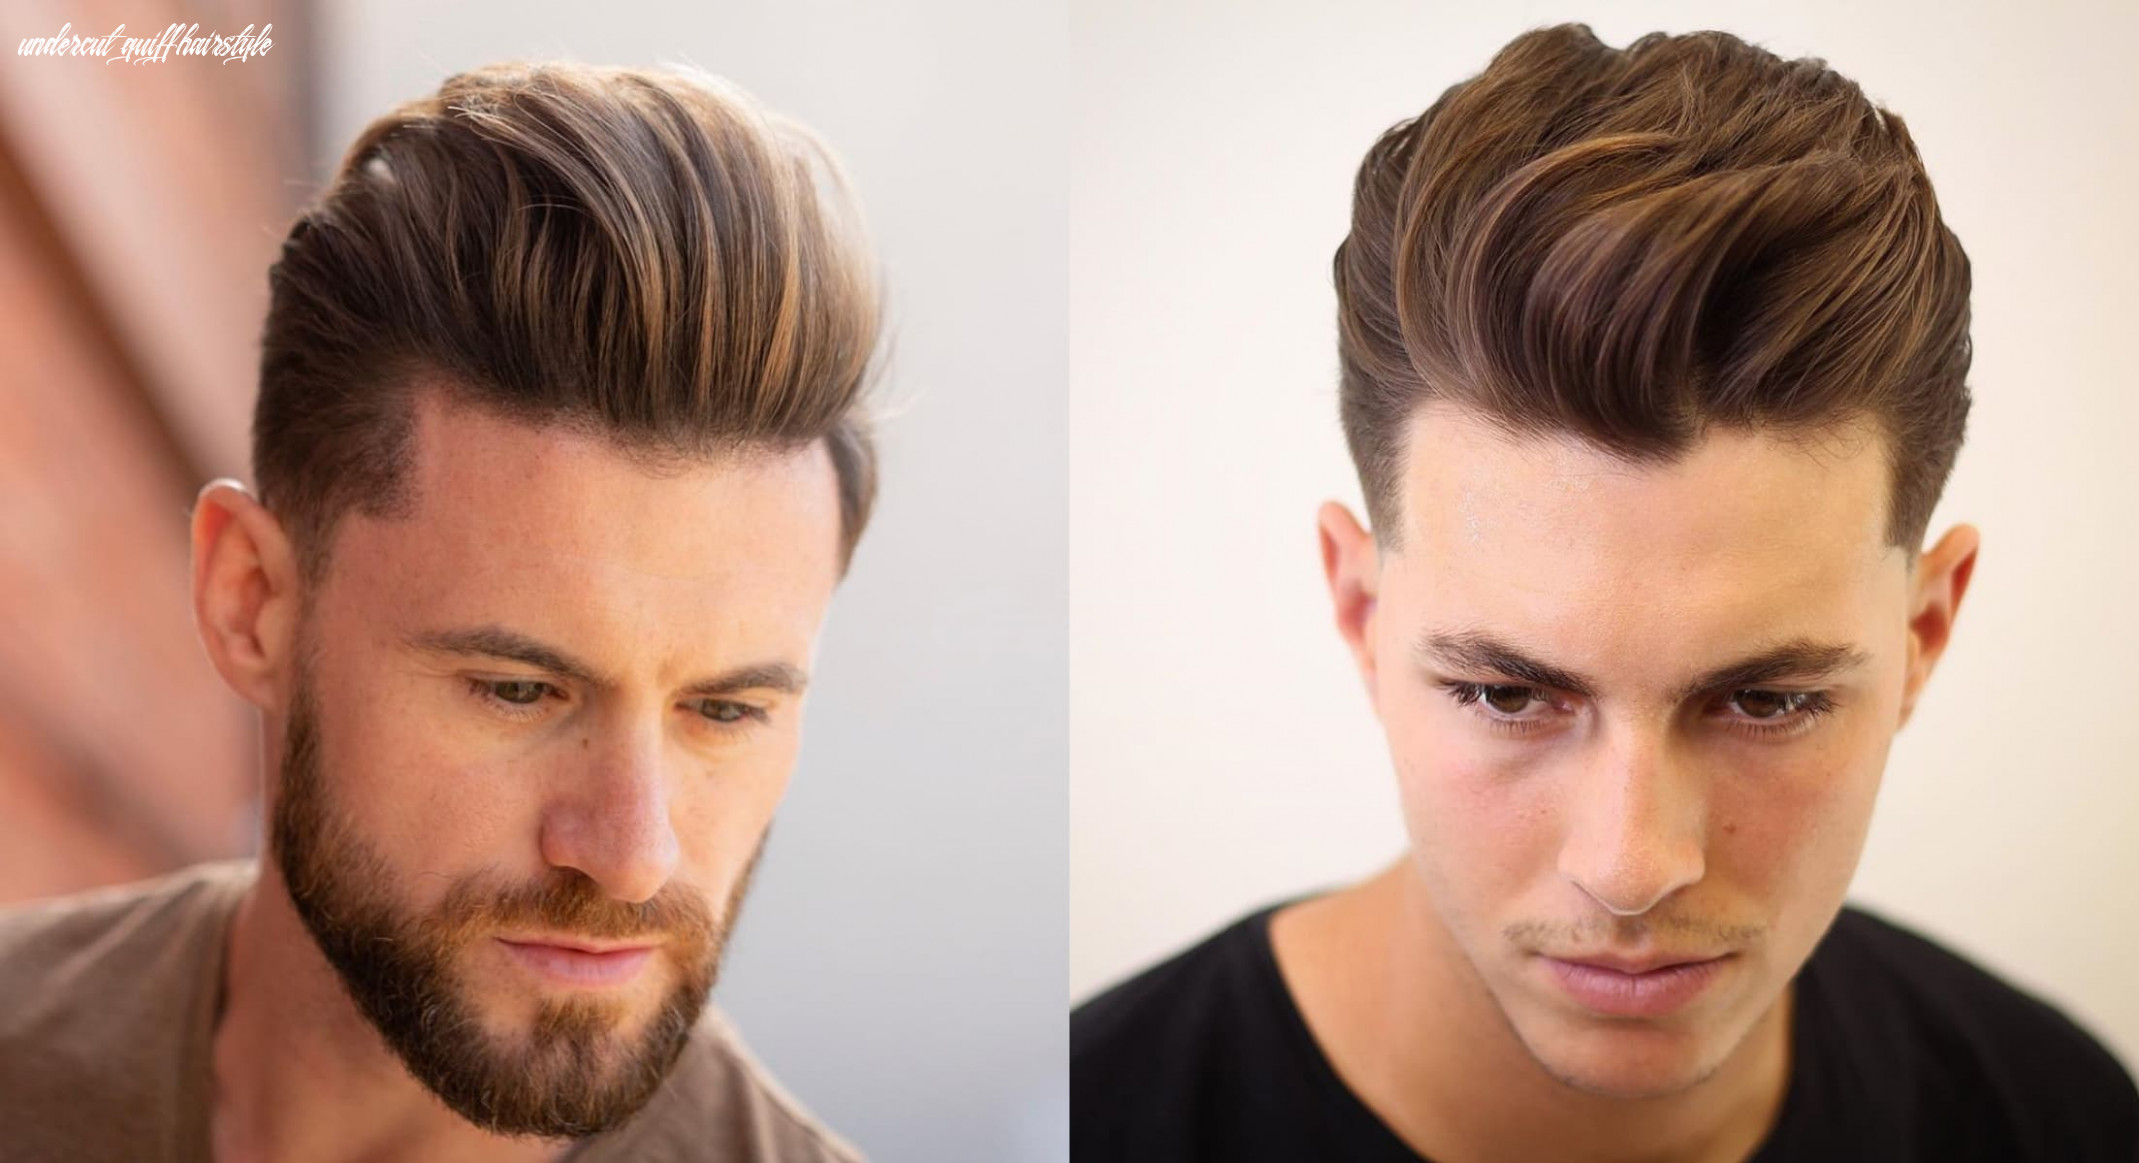 8 gorgeous quiff hairstyles for men of all ages | stylesrant undercut quiff hairstyle